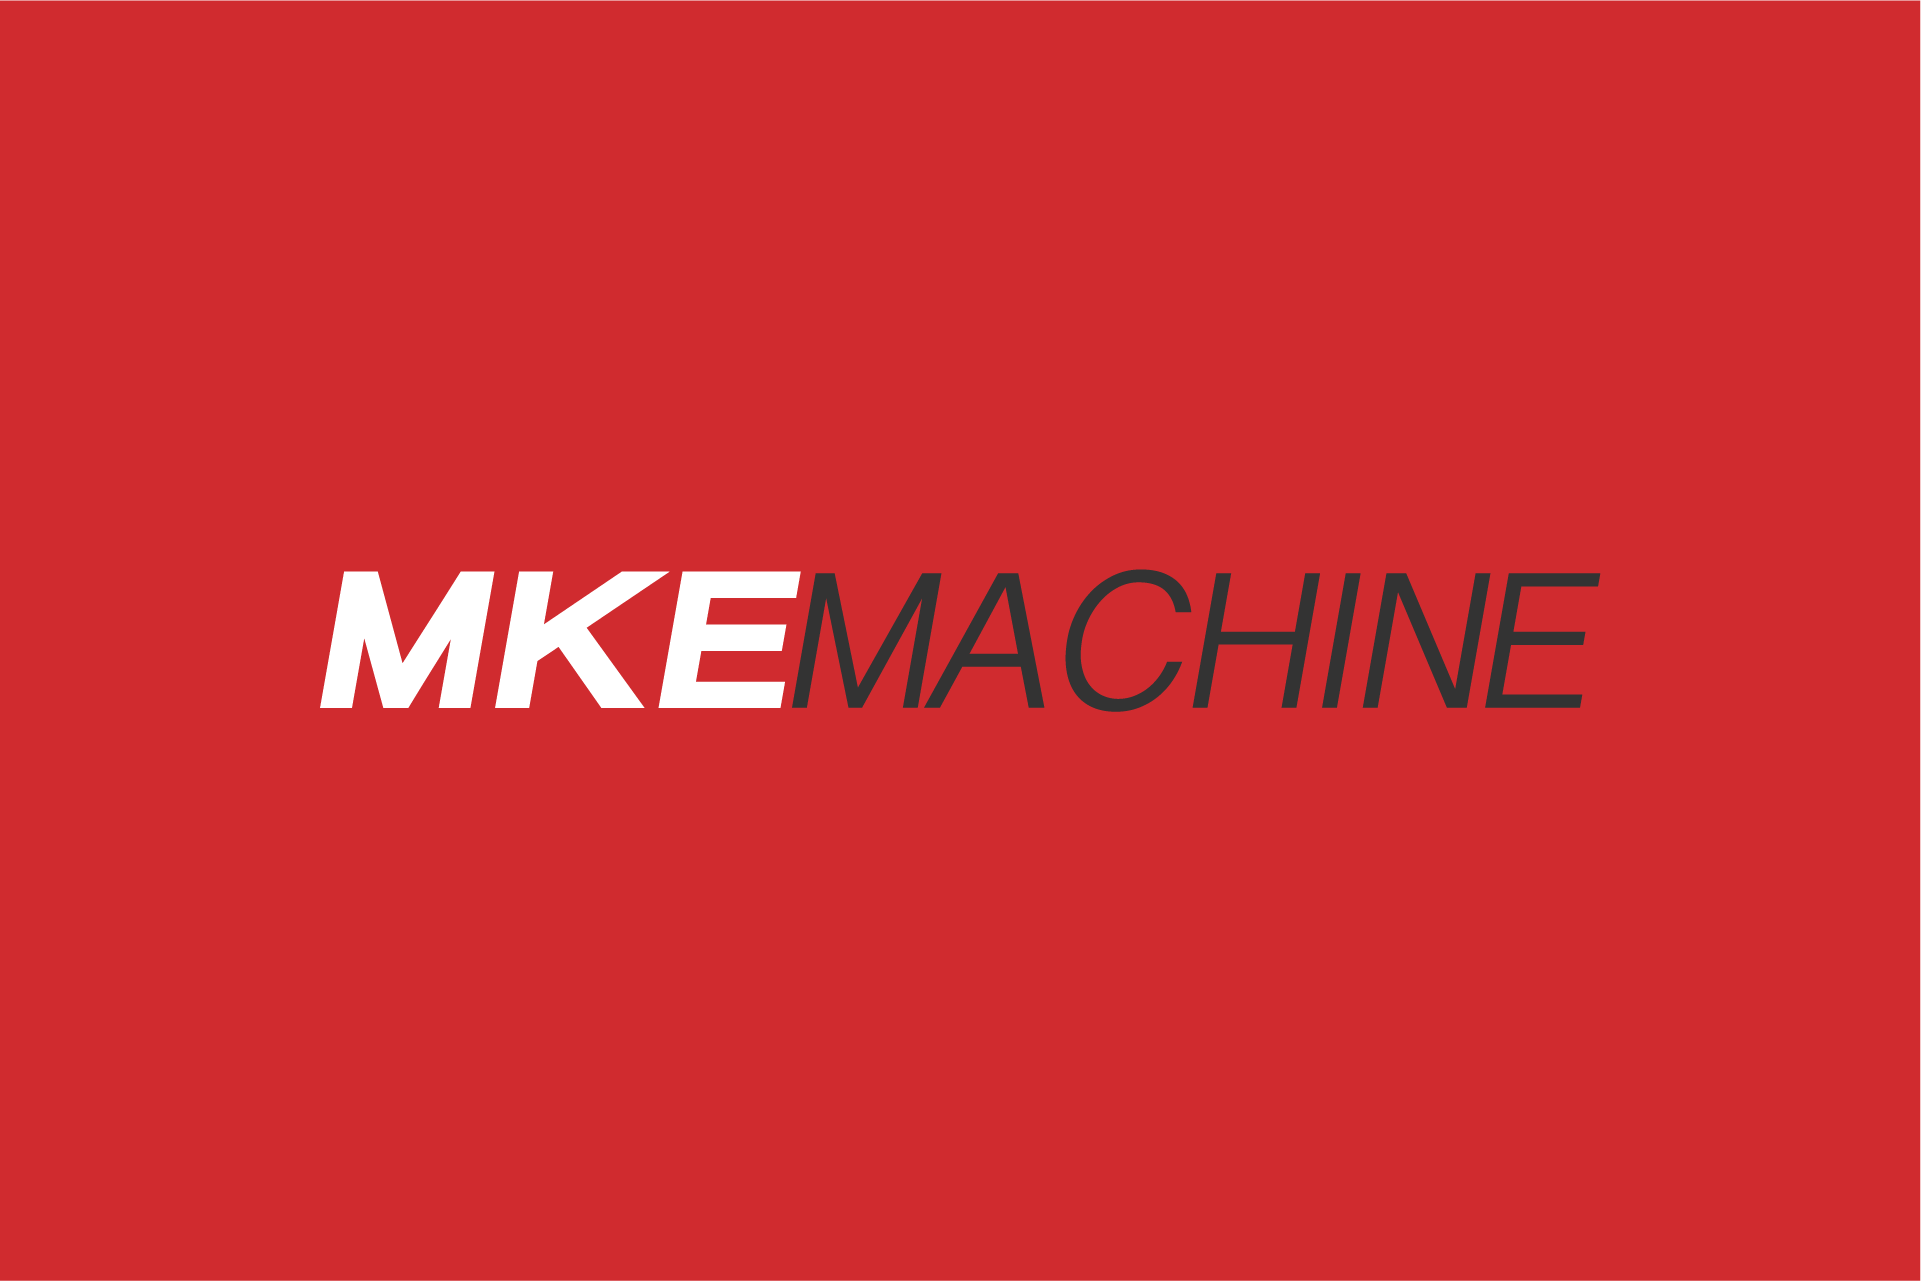 MKE Machine Logo Design Color Theory 3